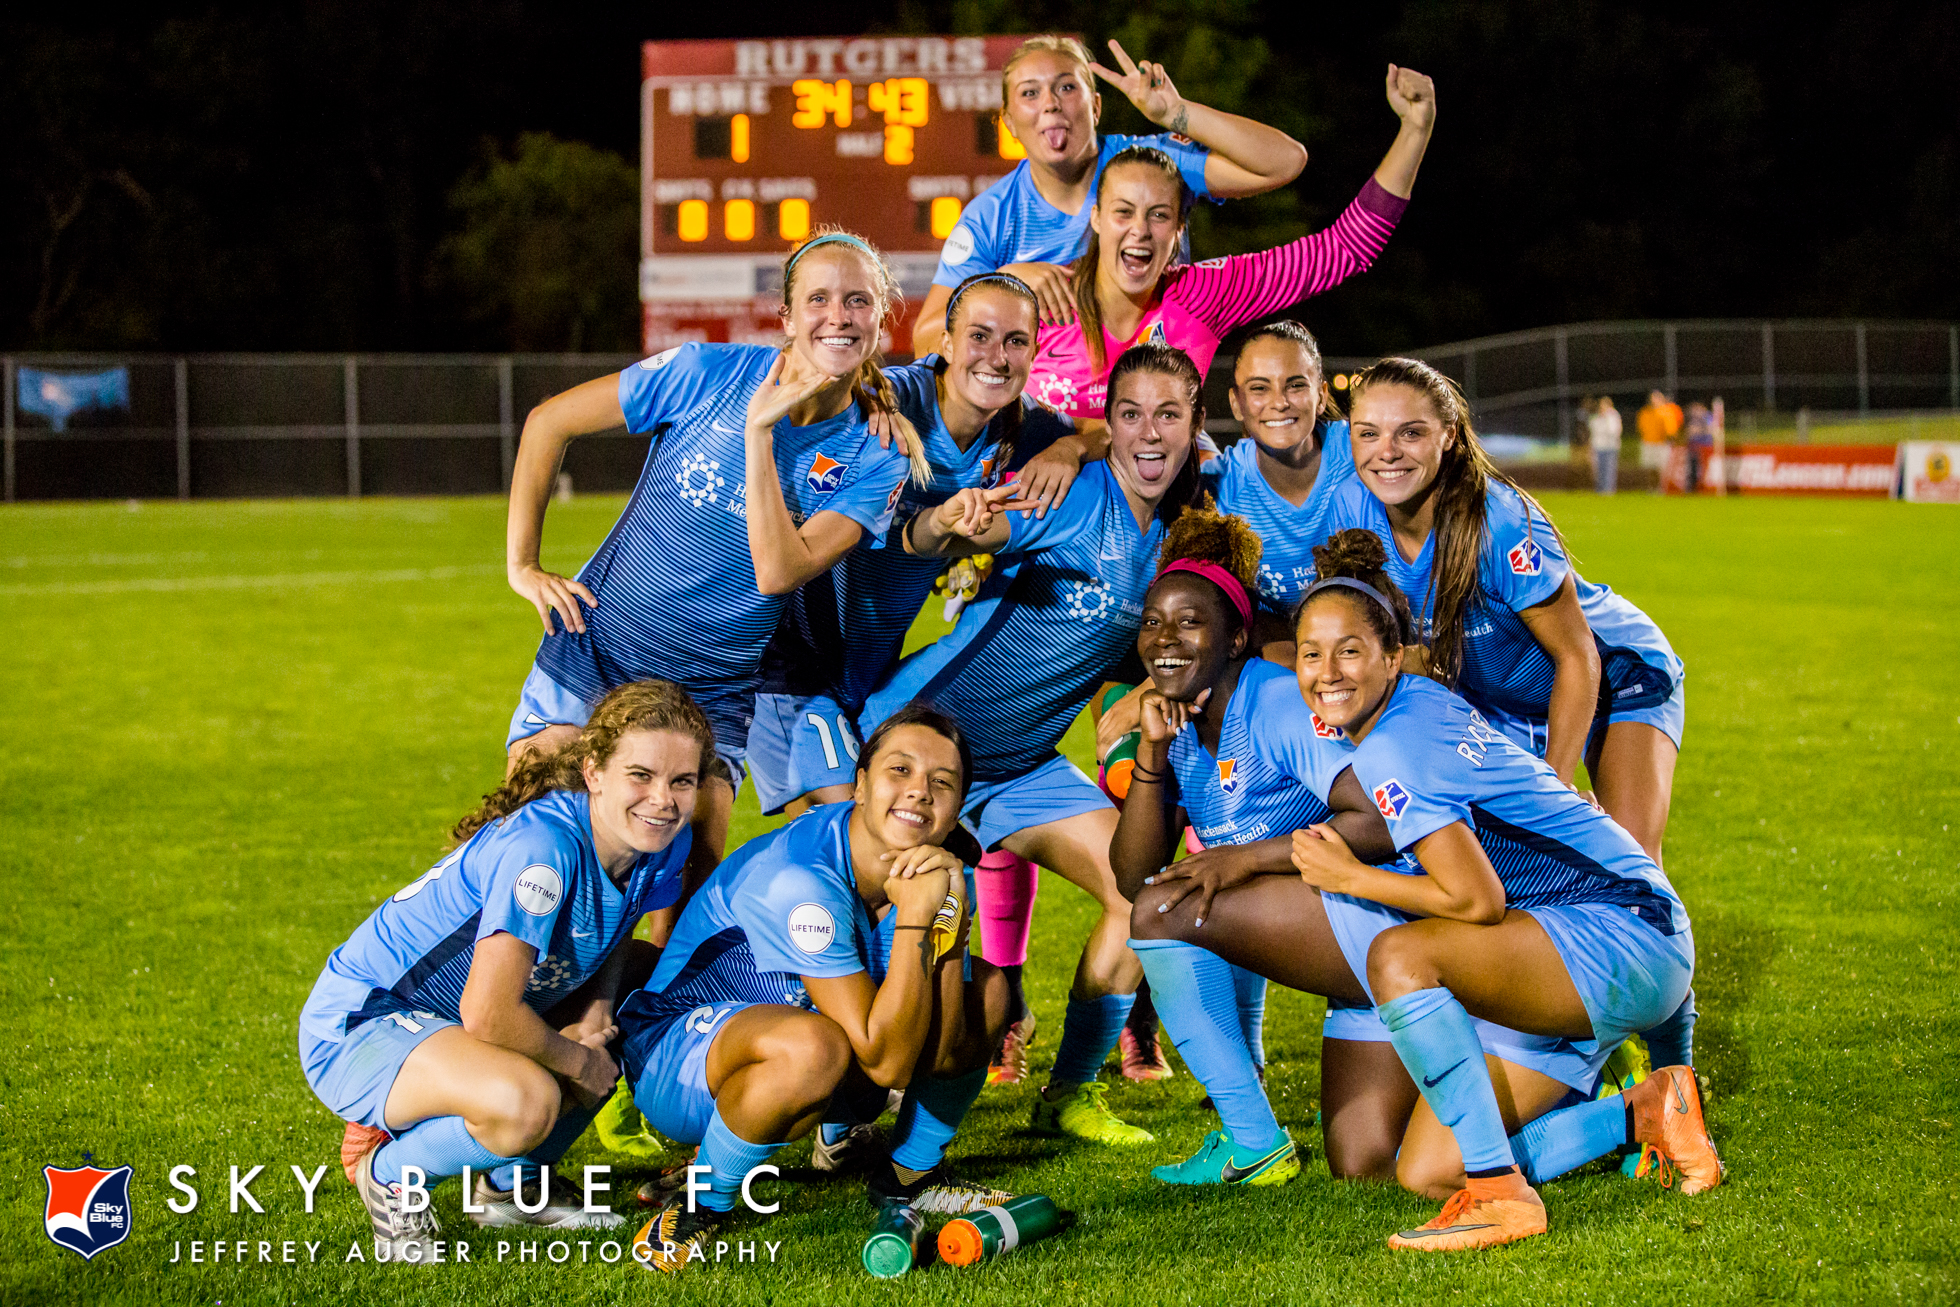 Highlights from Sky Blue FC 2017